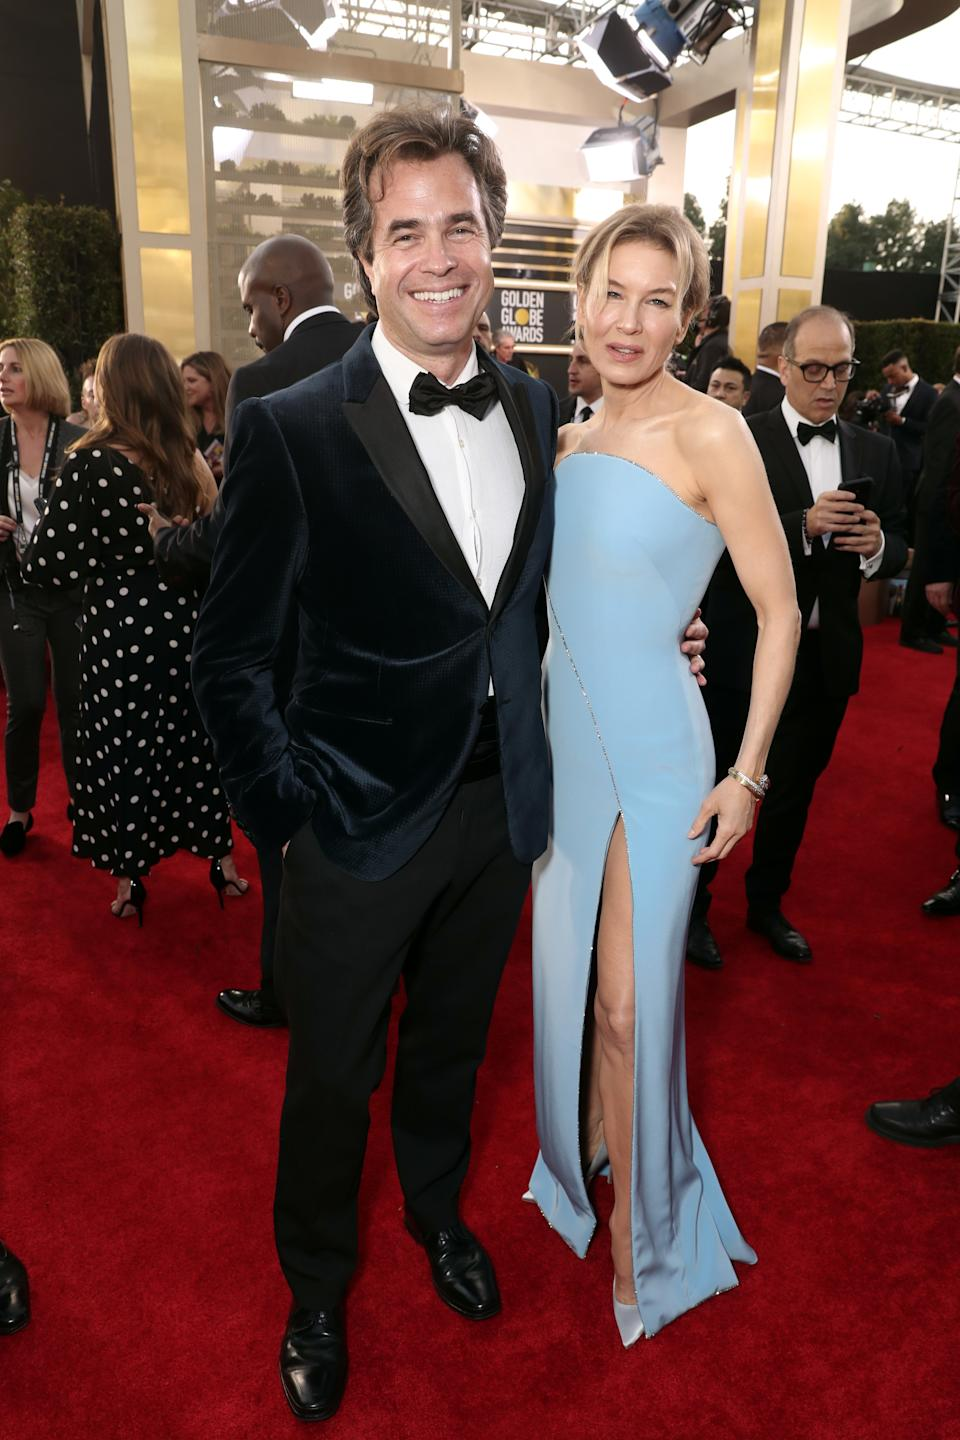 "<h1 class=""title"">Rupert Goold and Renée Zellweger in Armani and Jimmy Choo shoes</h1><cite class=""credit"">Photo: Getty Images</cite>"